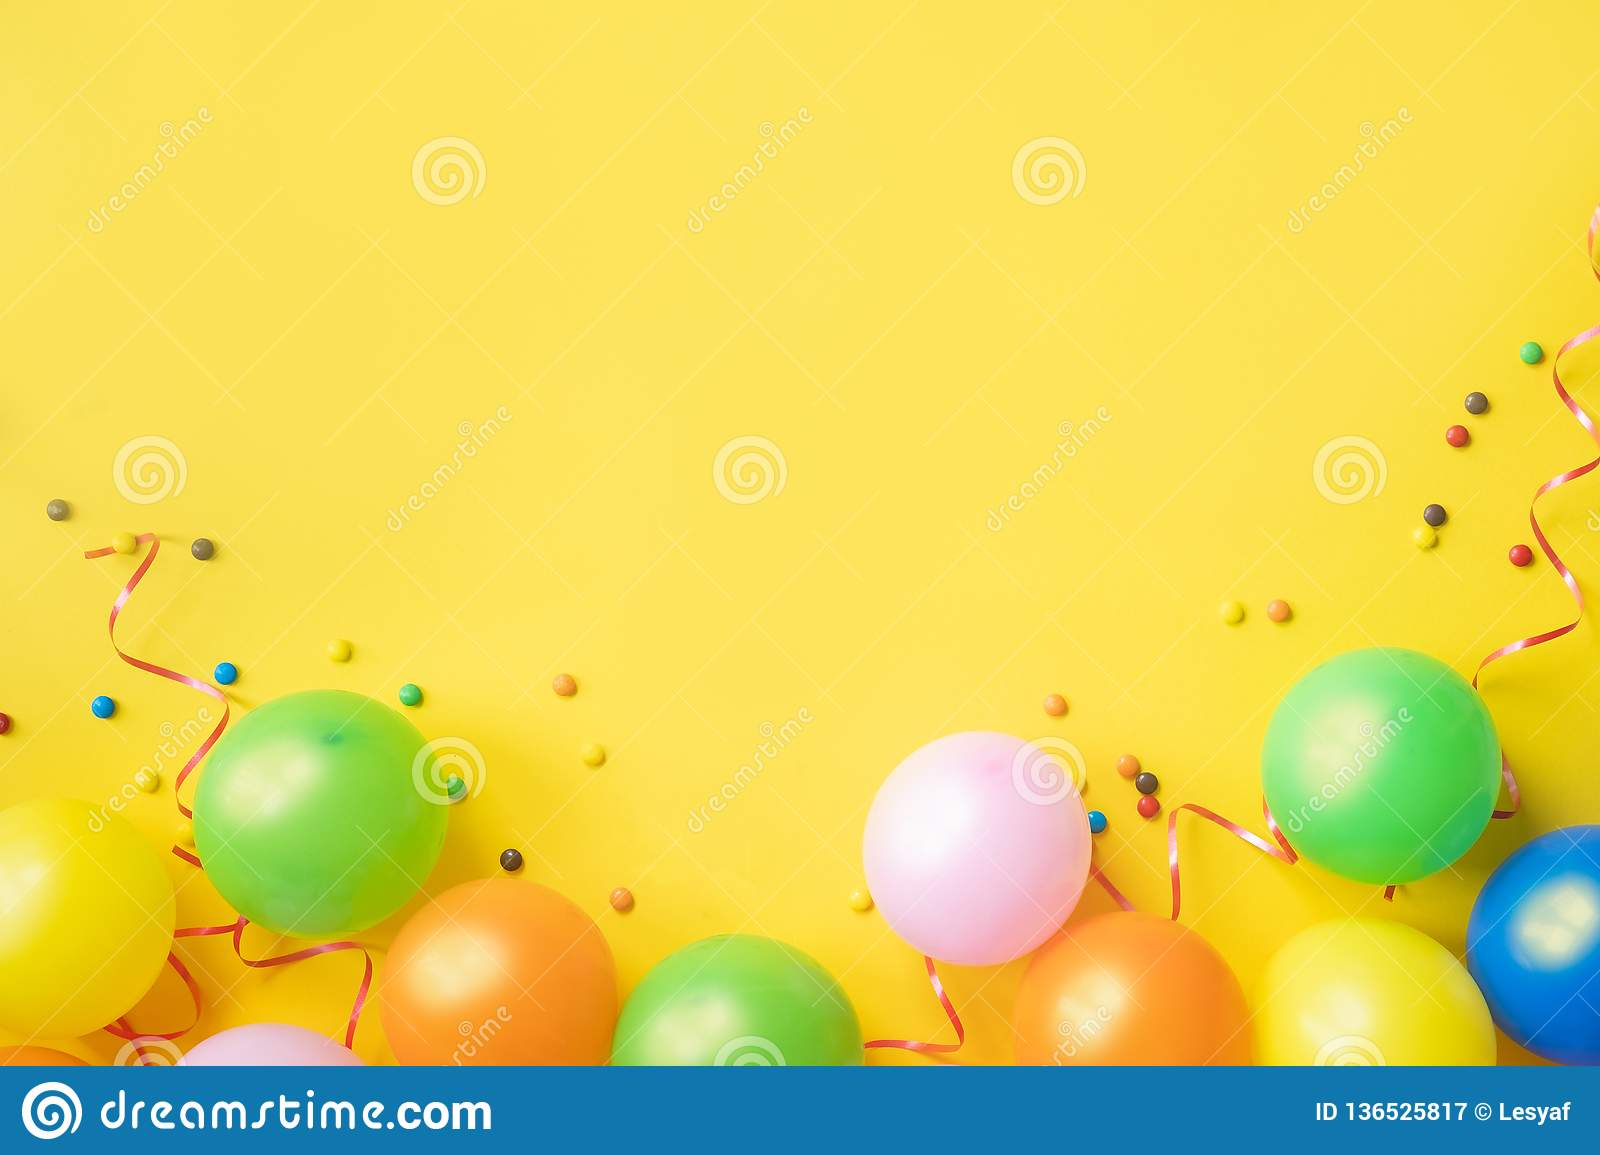 Heap of colorful balloons, confetti and candies on yellow table top view. Birthday party background. Festive greeting card